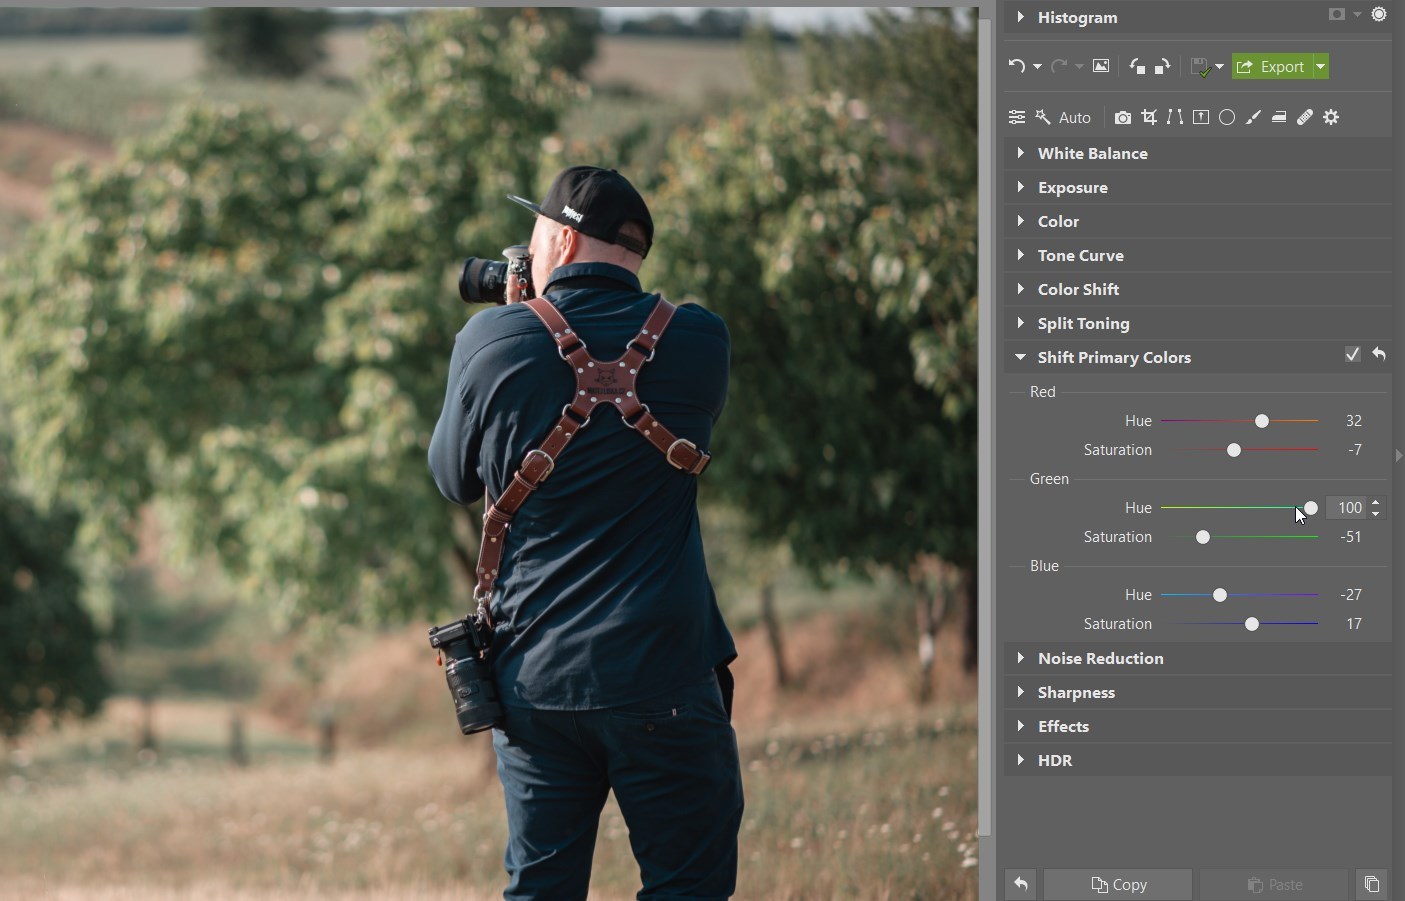 Shift Primary Colors: A Great Tool for Creative Edits—And for Fine Tuning Colors Too